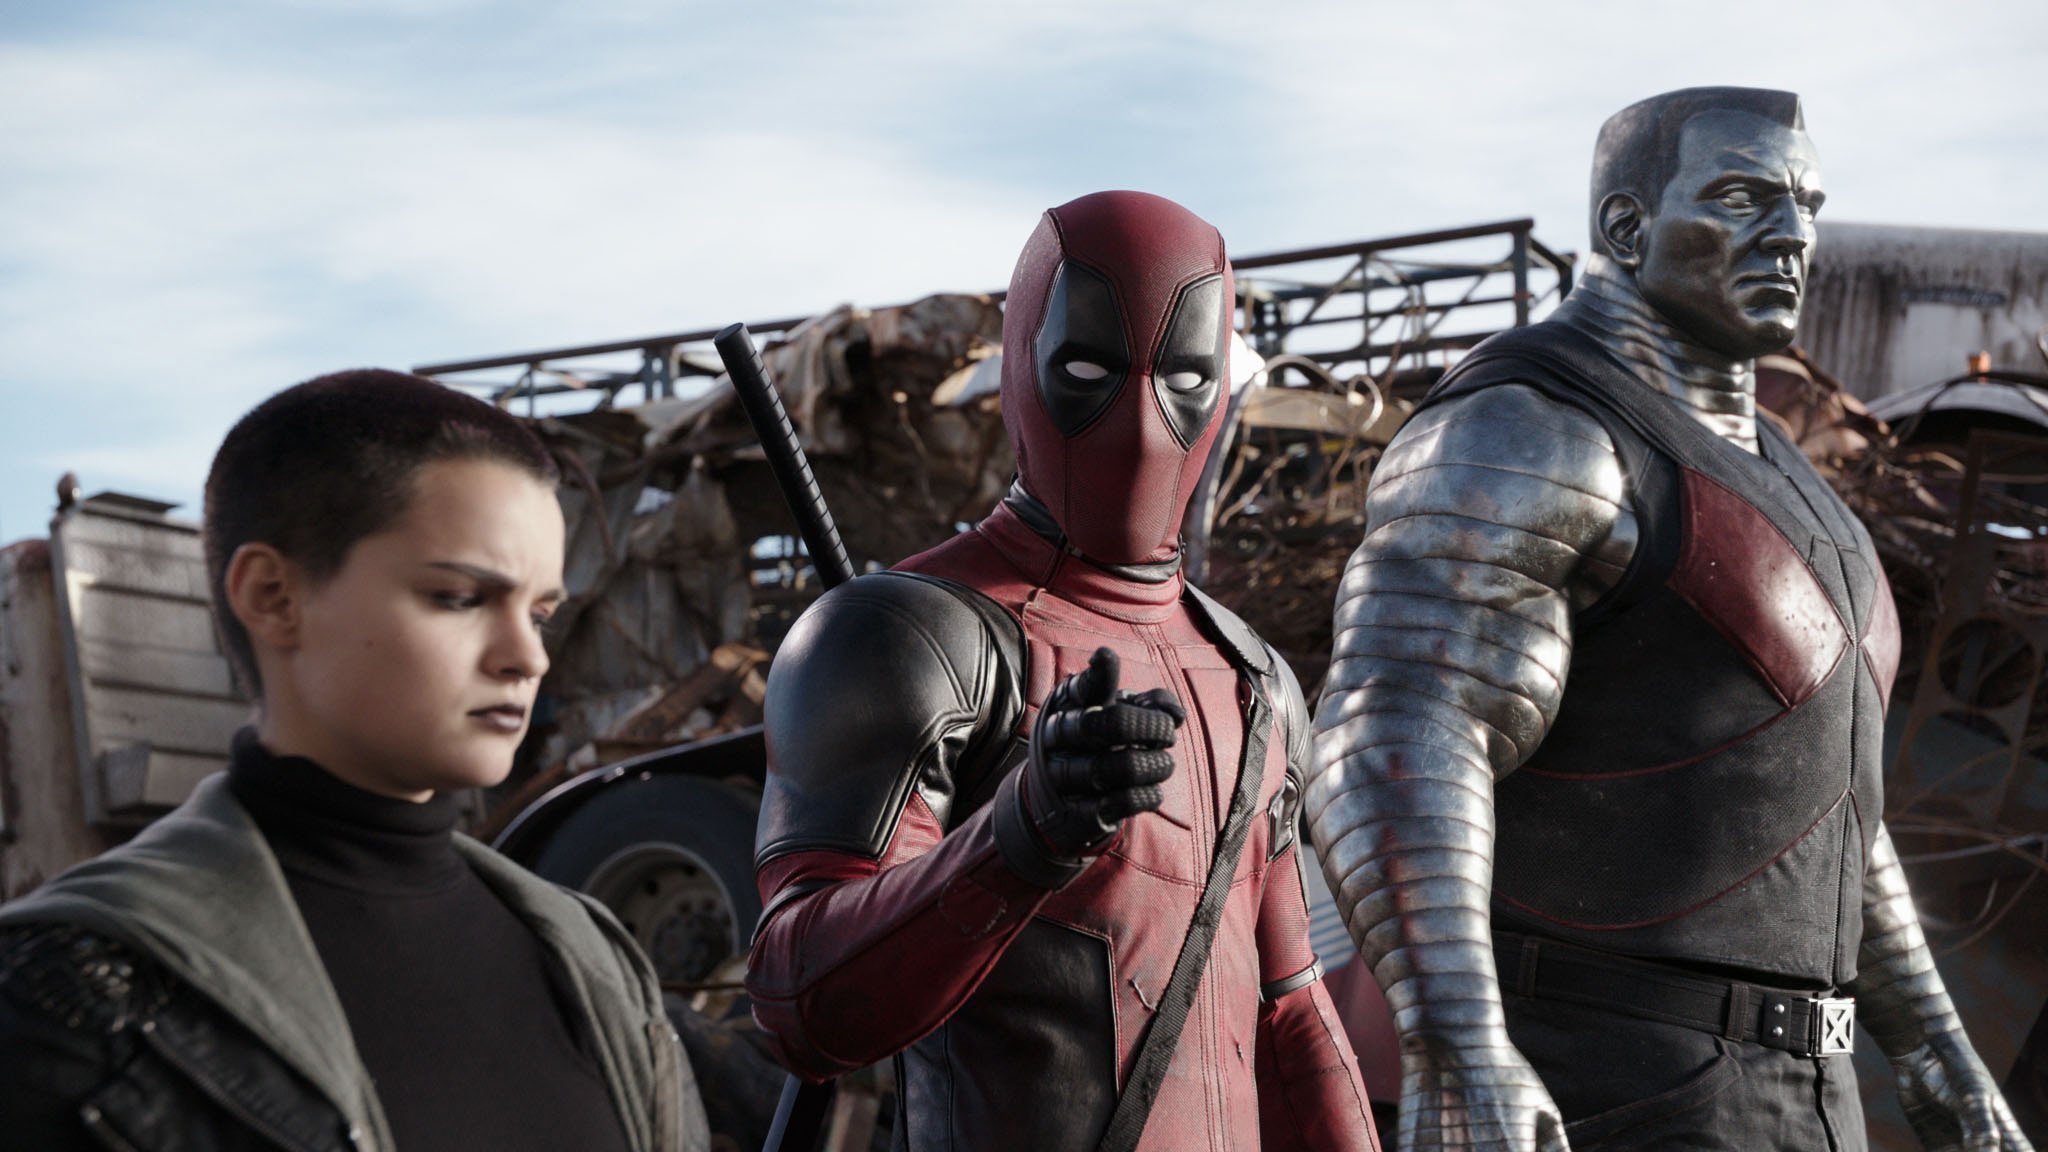 Deadpool (Ryan Reynolds) pauses from a life-and-death battle to break the fourth wall.